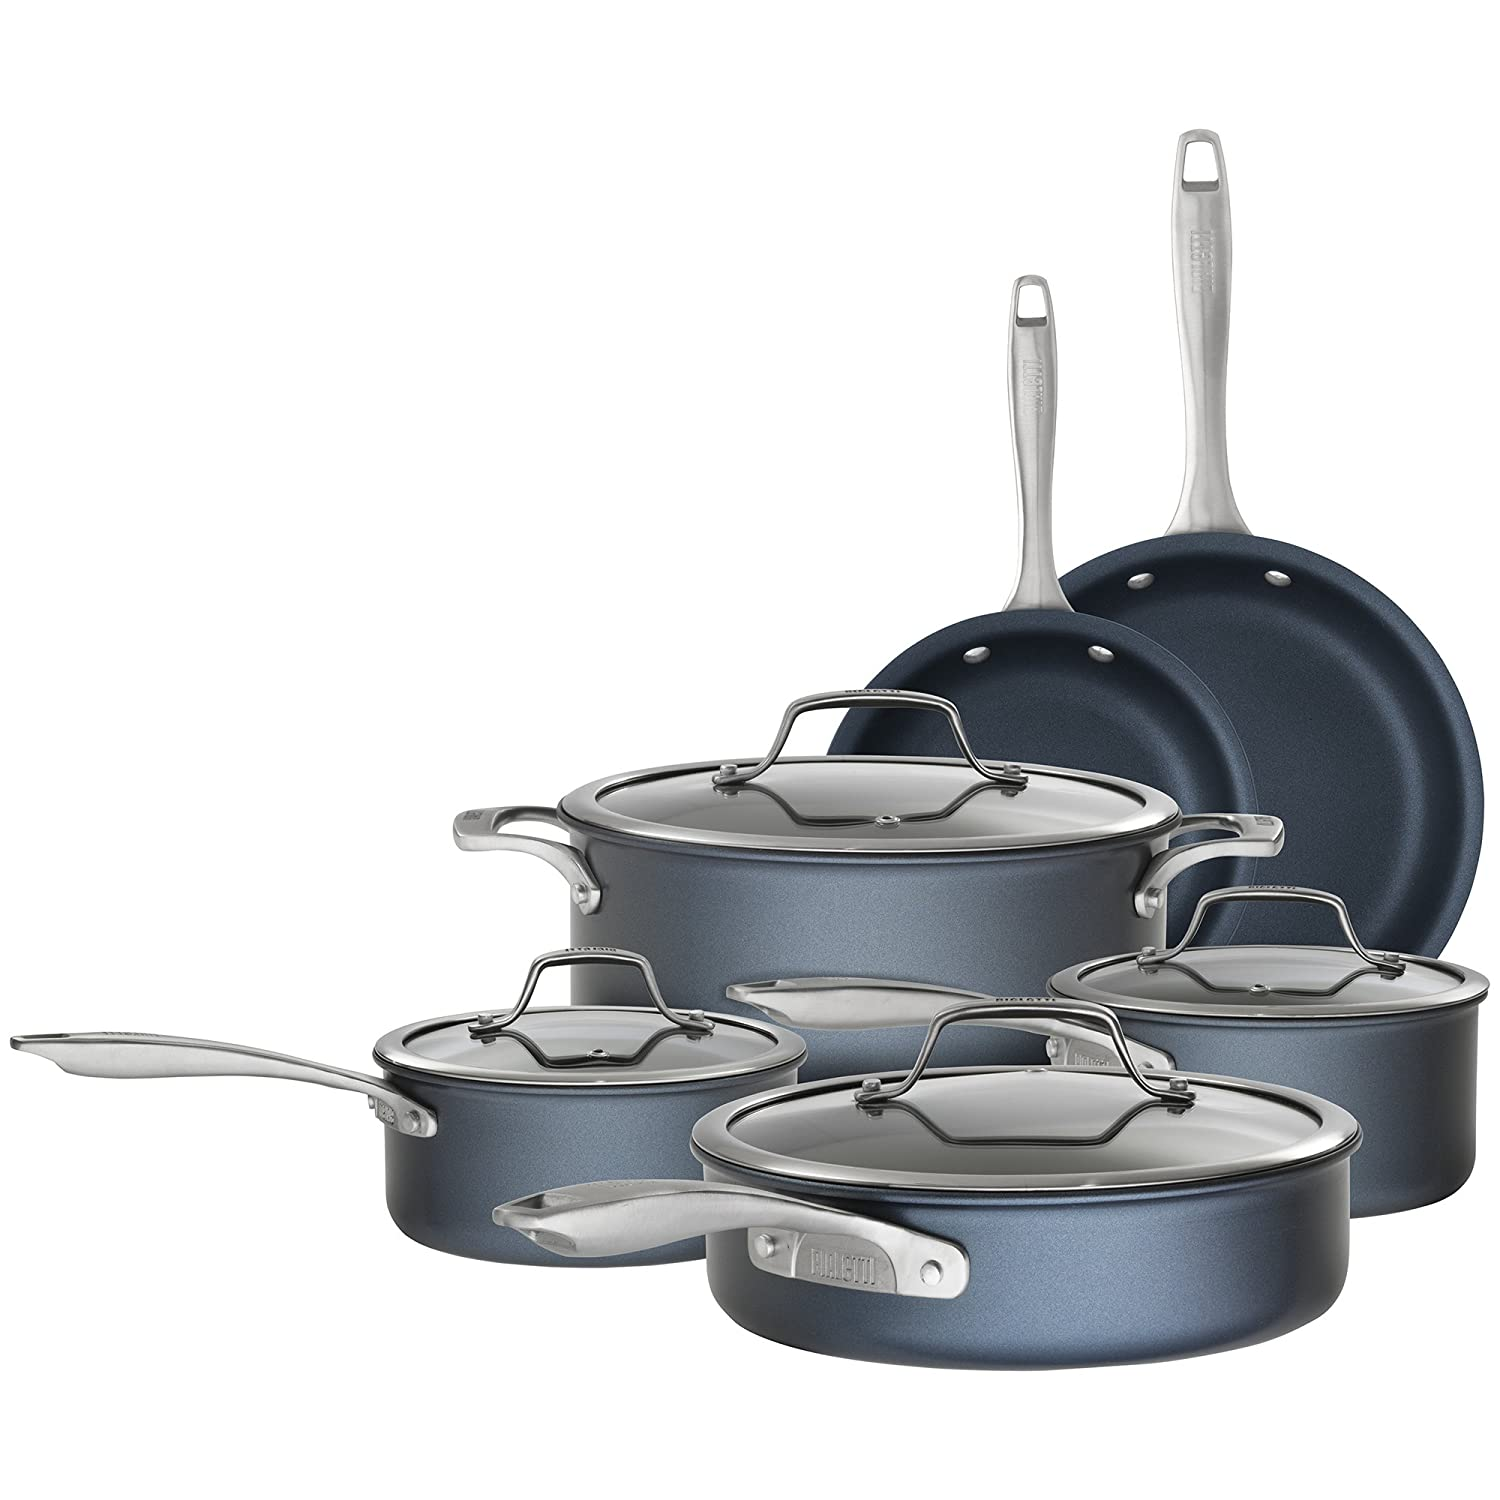 Bialetti 7466 Sapphire 10 piece Nonstick Hard Anodized Cookware Set - Induction Compatible, Dishwasher Safe, Dark Blue